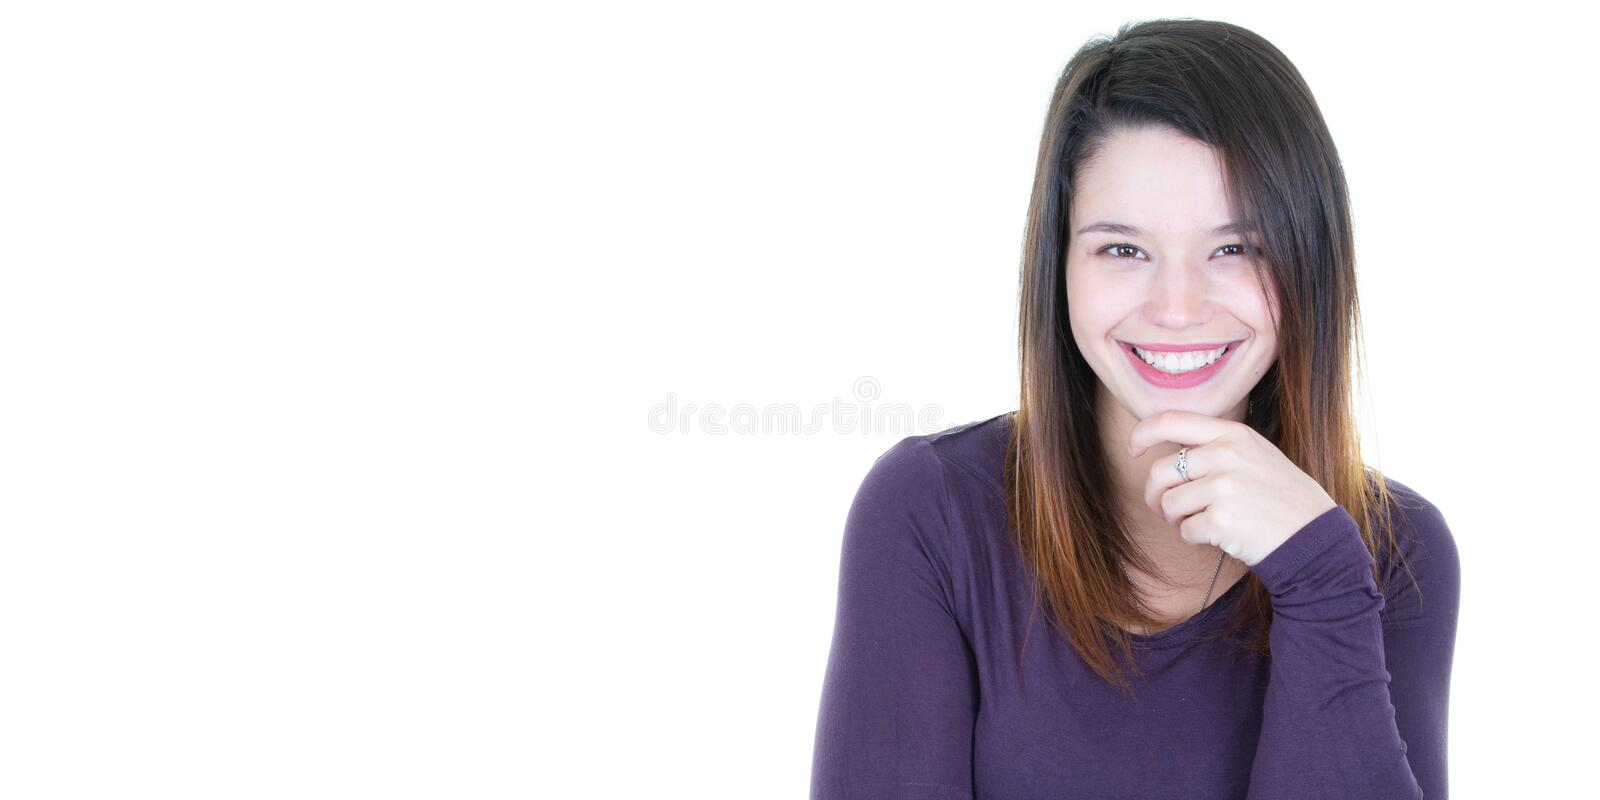 Portrait of a smiling brunette young woman in banner web template aside copy space royalty free stock image